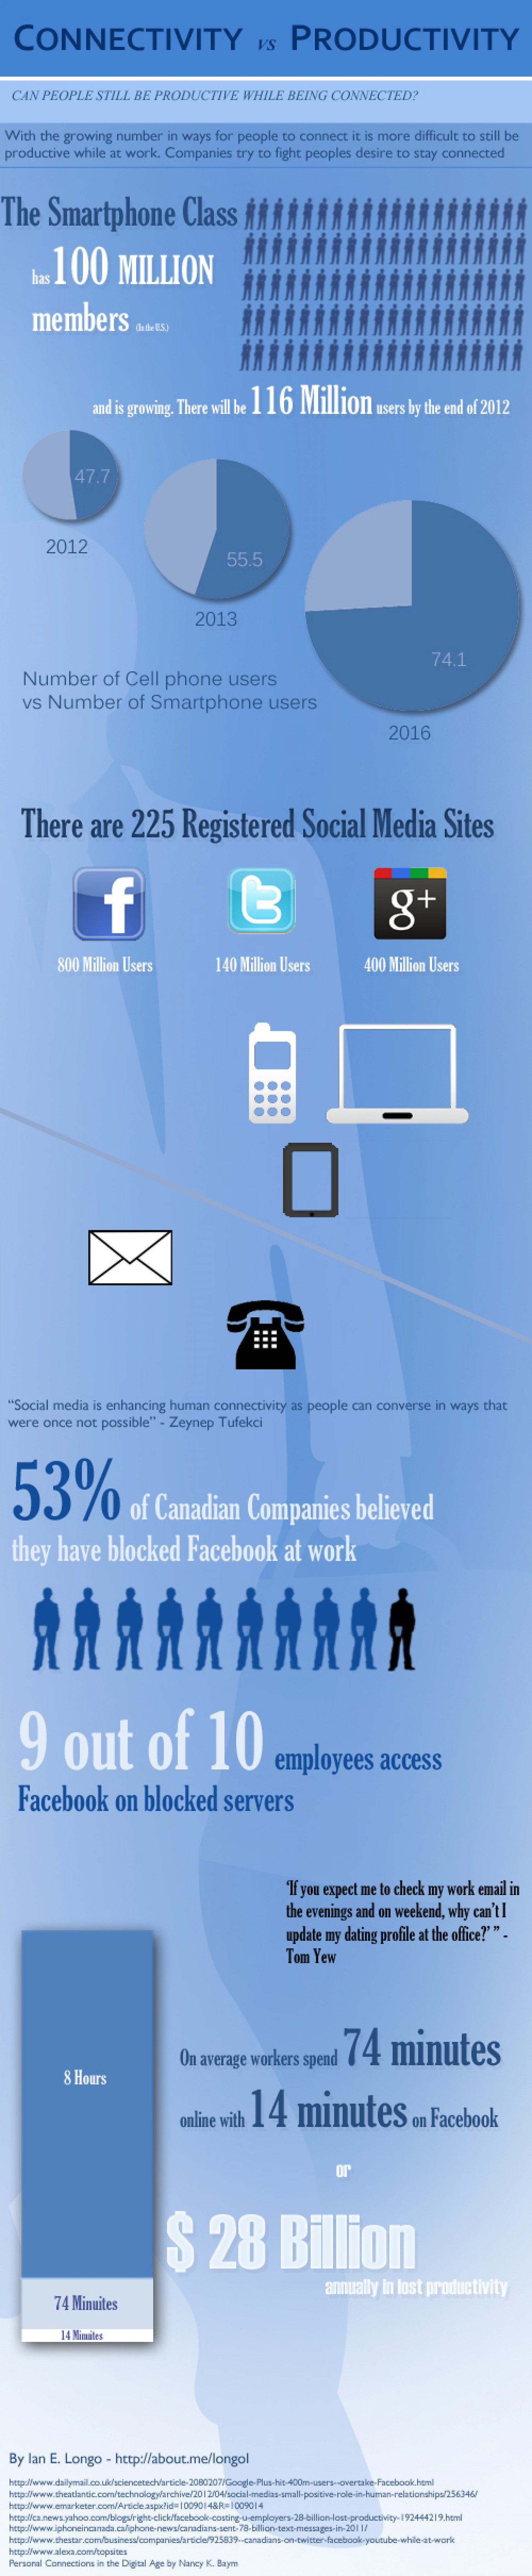 Facebook at Work Infographic